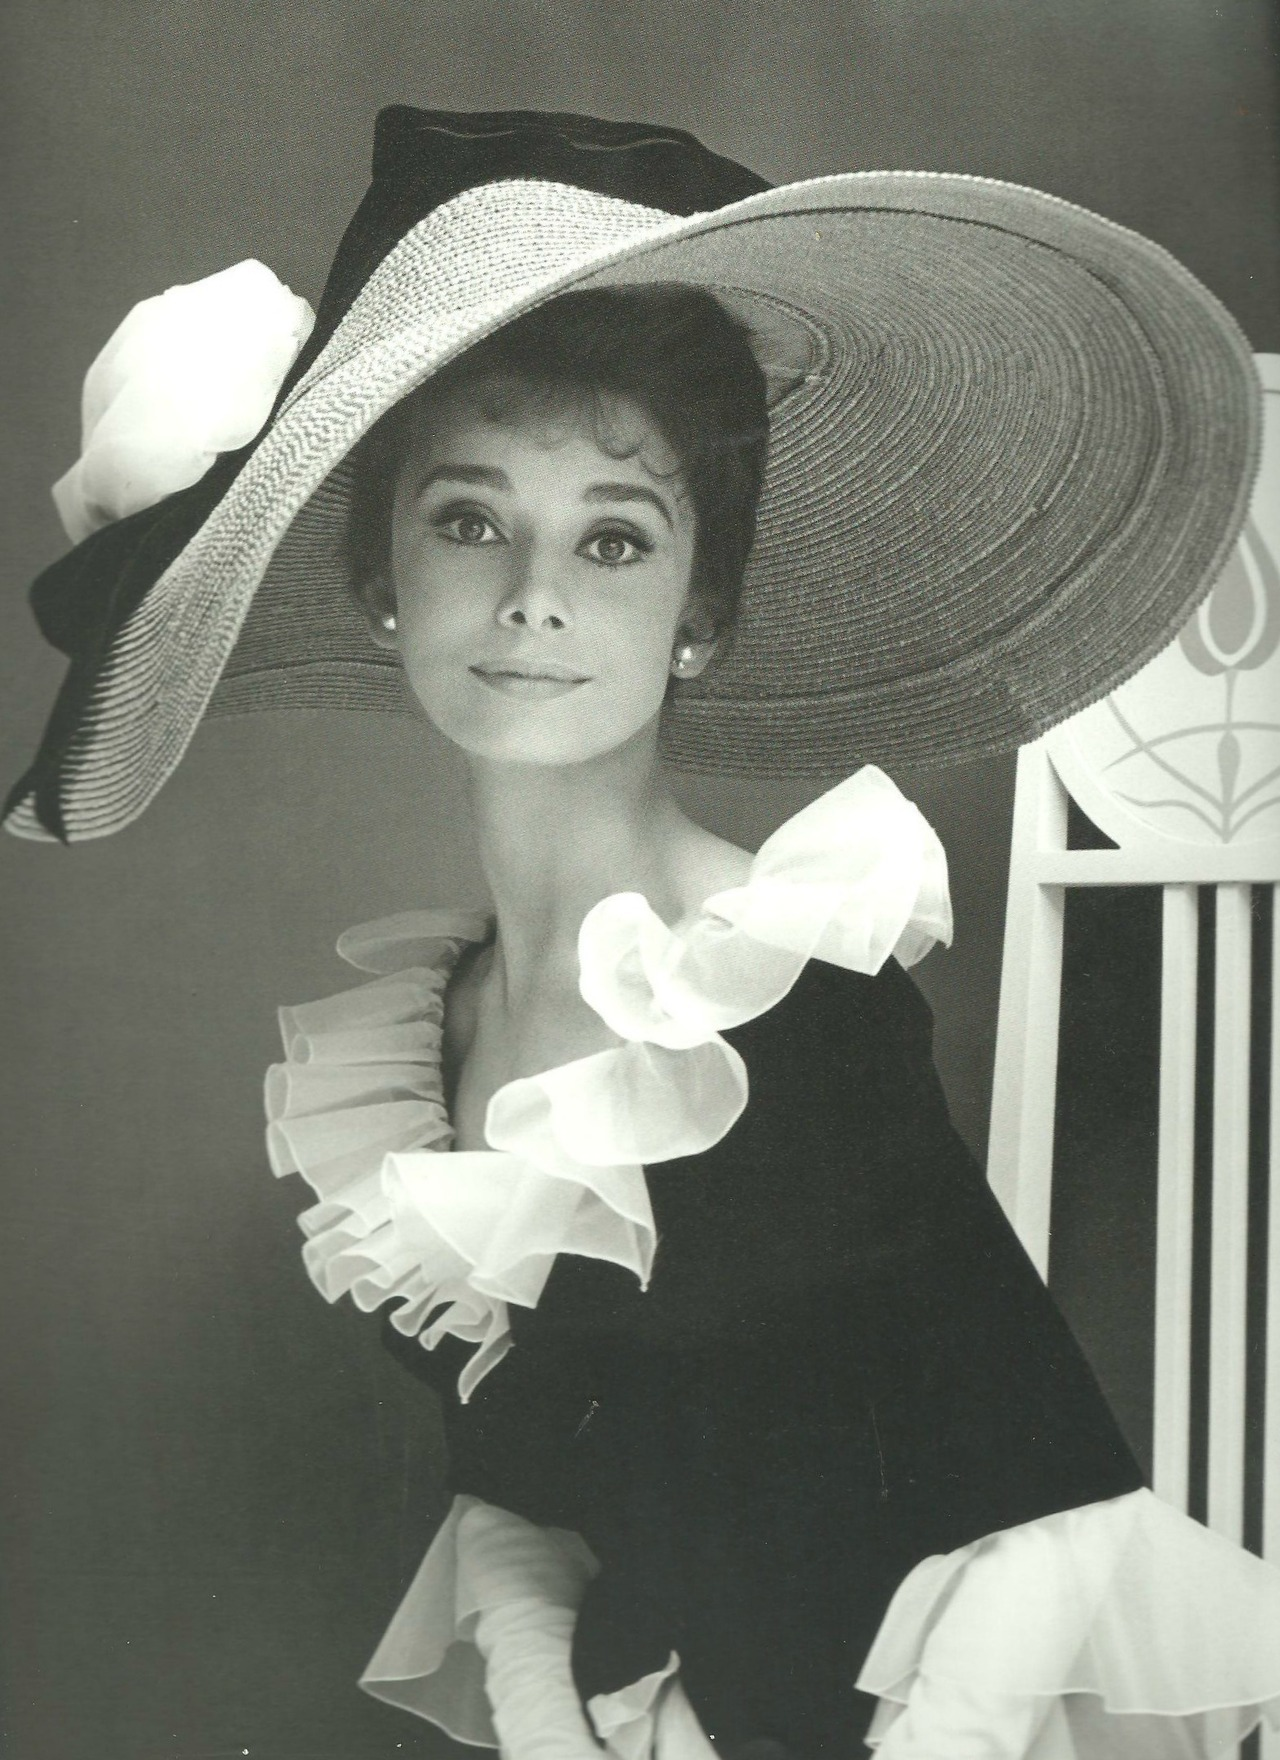 Audrey Hepburn photographed by Cecil Beaton, 1963.